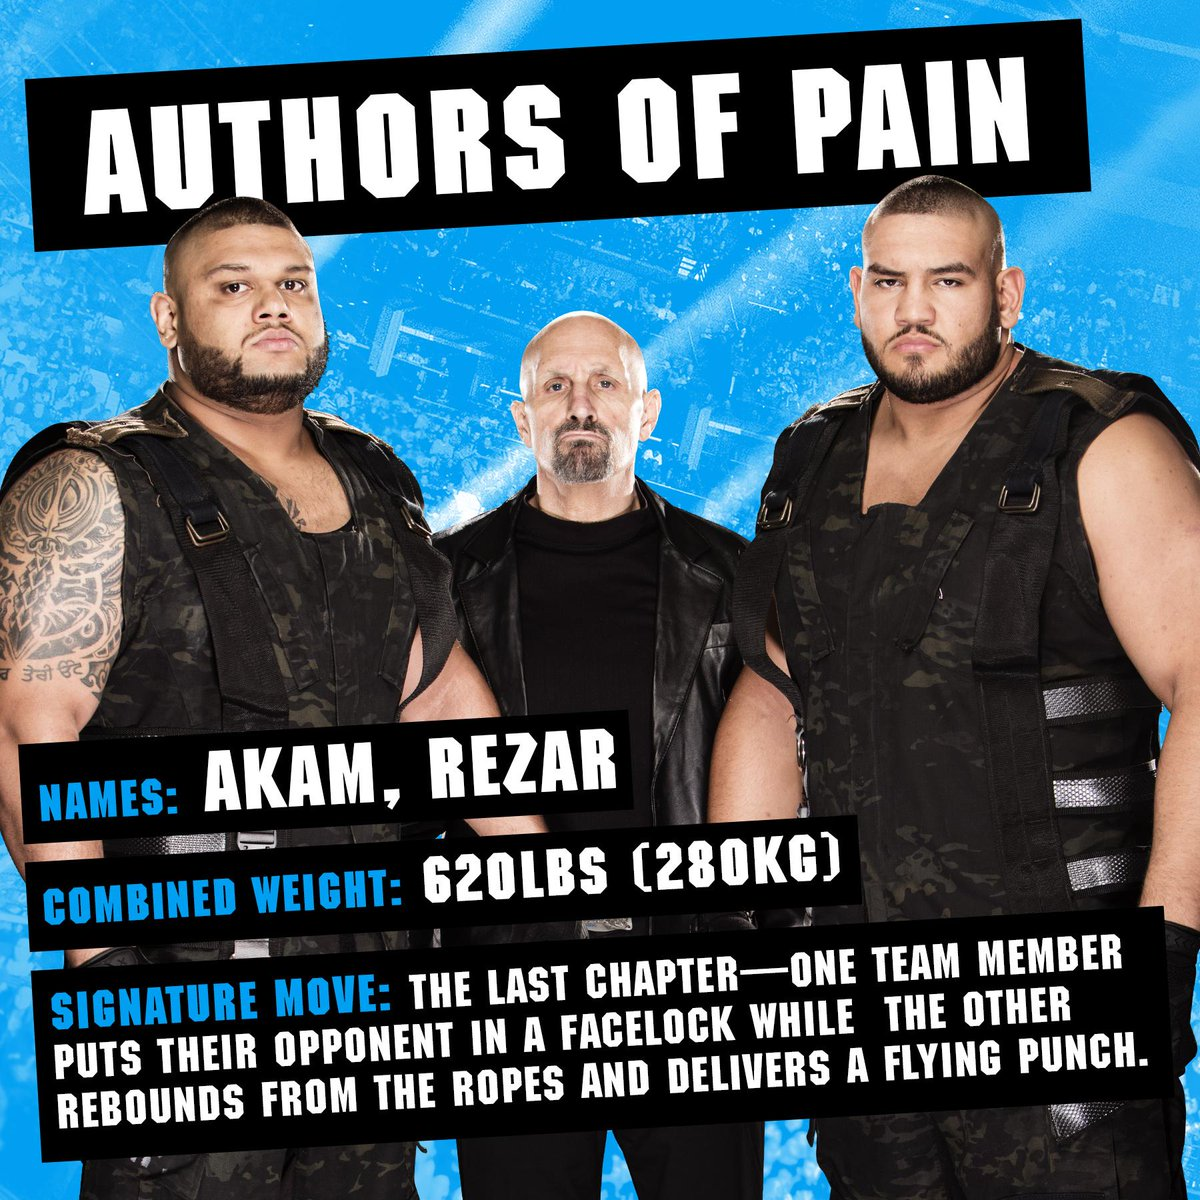 A new chapter in the book of pain. From @WWENXTs brightest to the #WWEHOFs finest, the @WWE Ultimate Superstar Guide has them all!  @Akam_WWE @Rezar_WWE wwe.me/zPY9Ha